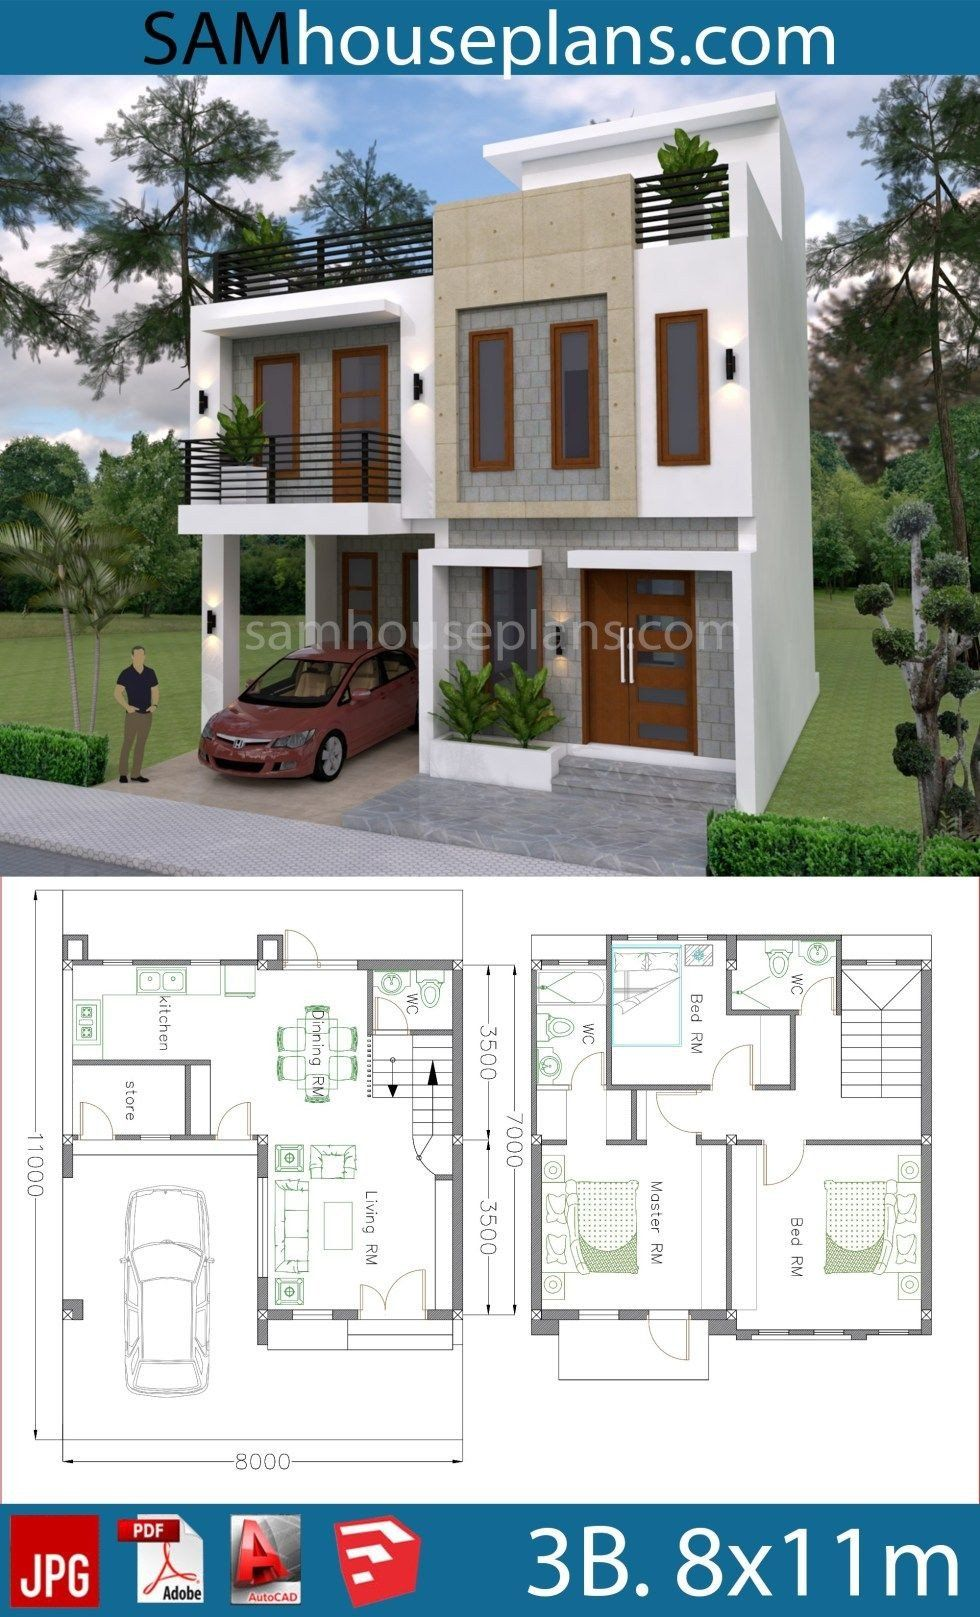 3 Storey Modern House Floor Plans House Plans 8x11m With 3 Bedrooms In 2020 In 2020 Model House Plan Narrow Lot House Plans Duplex House Plans